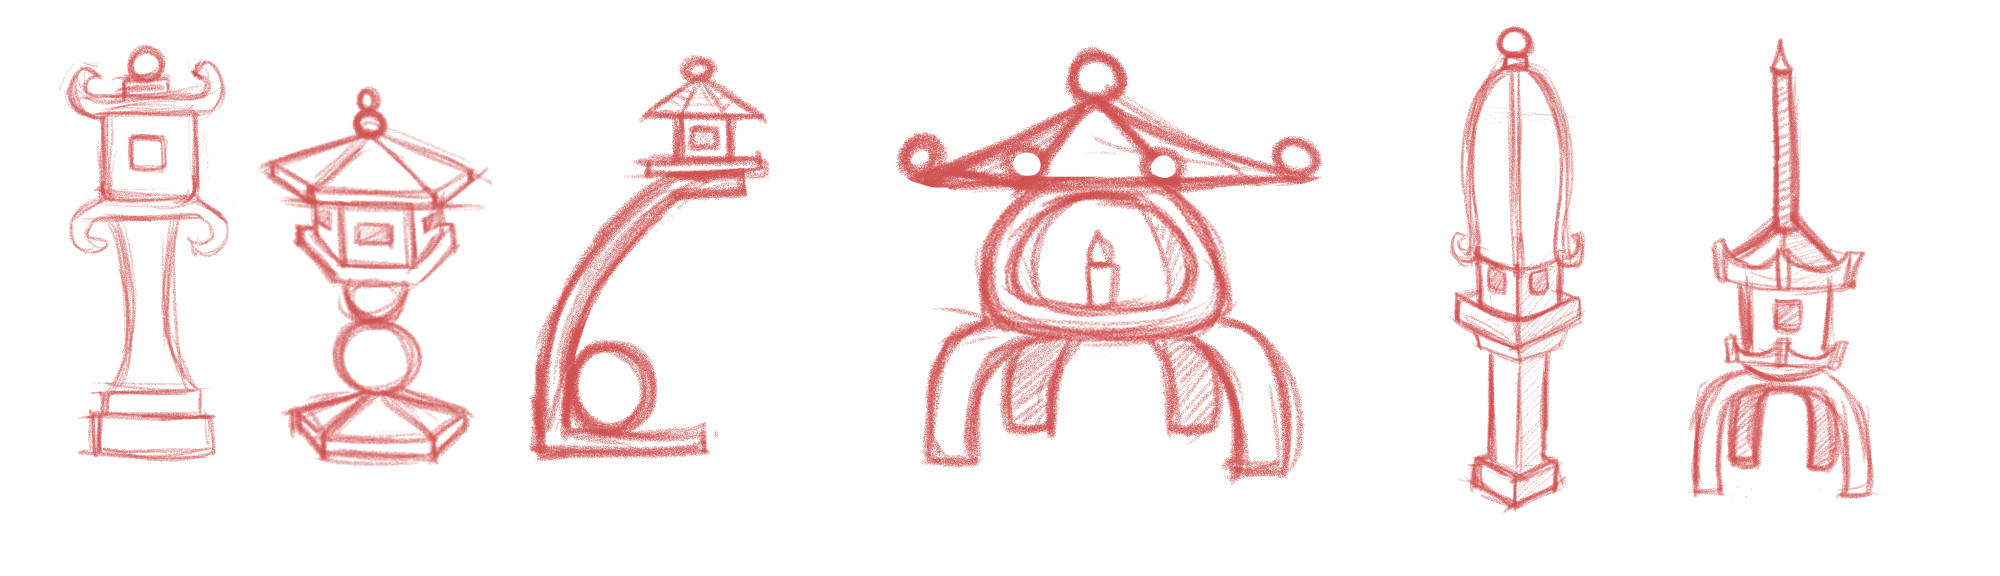 Concepts for stone lanterns